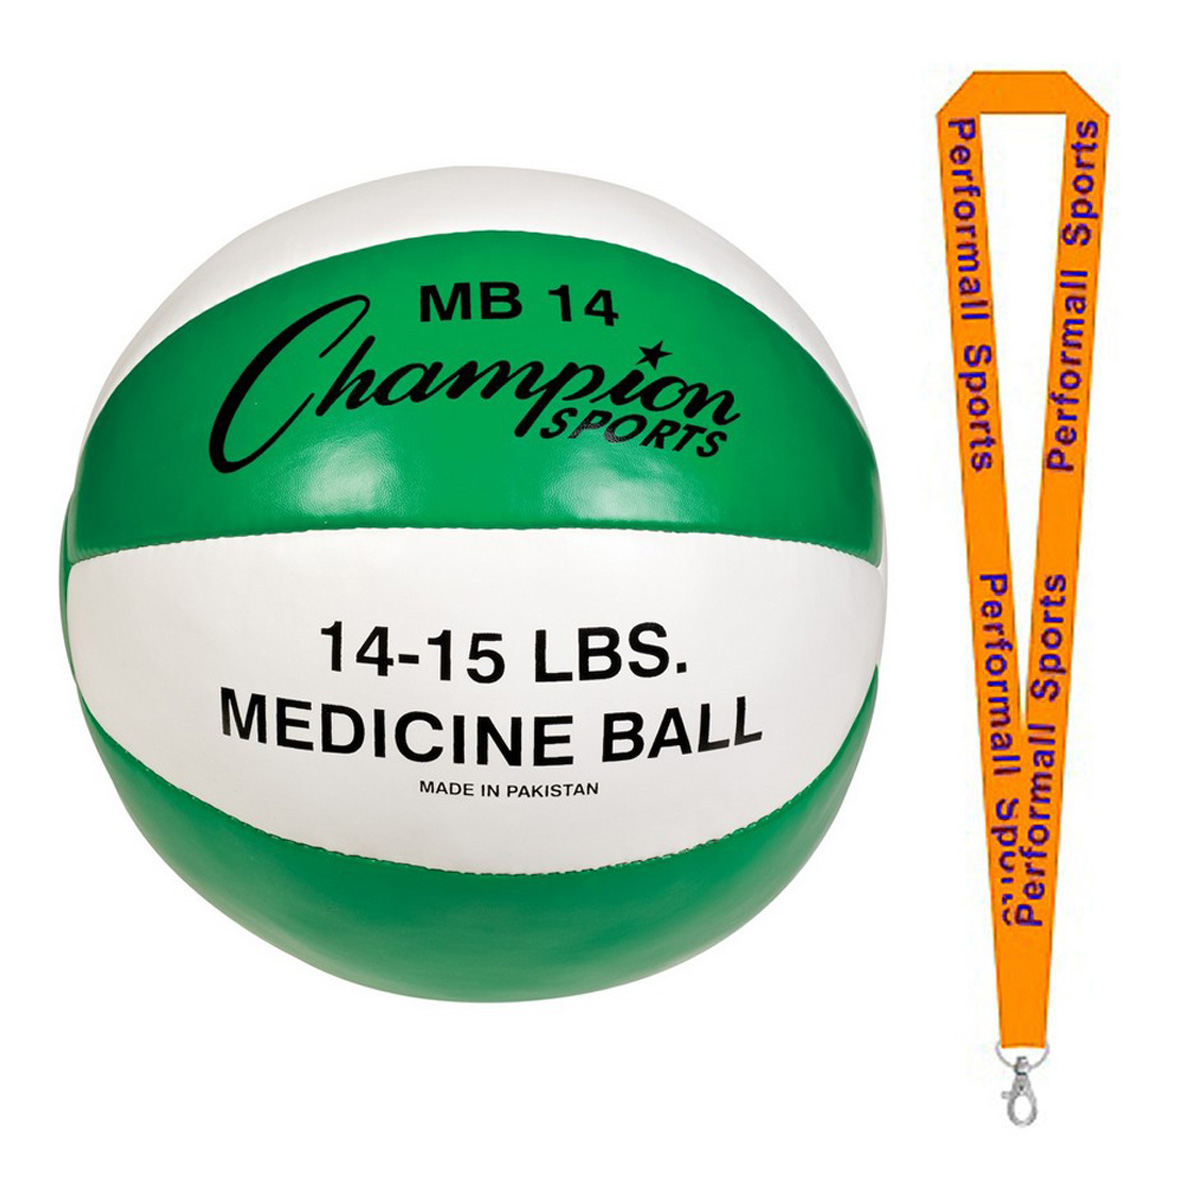 Champion Sports Bundle: Leather Medicine Balls Assorted Colors and Sizes with 1 Performall Lanyard